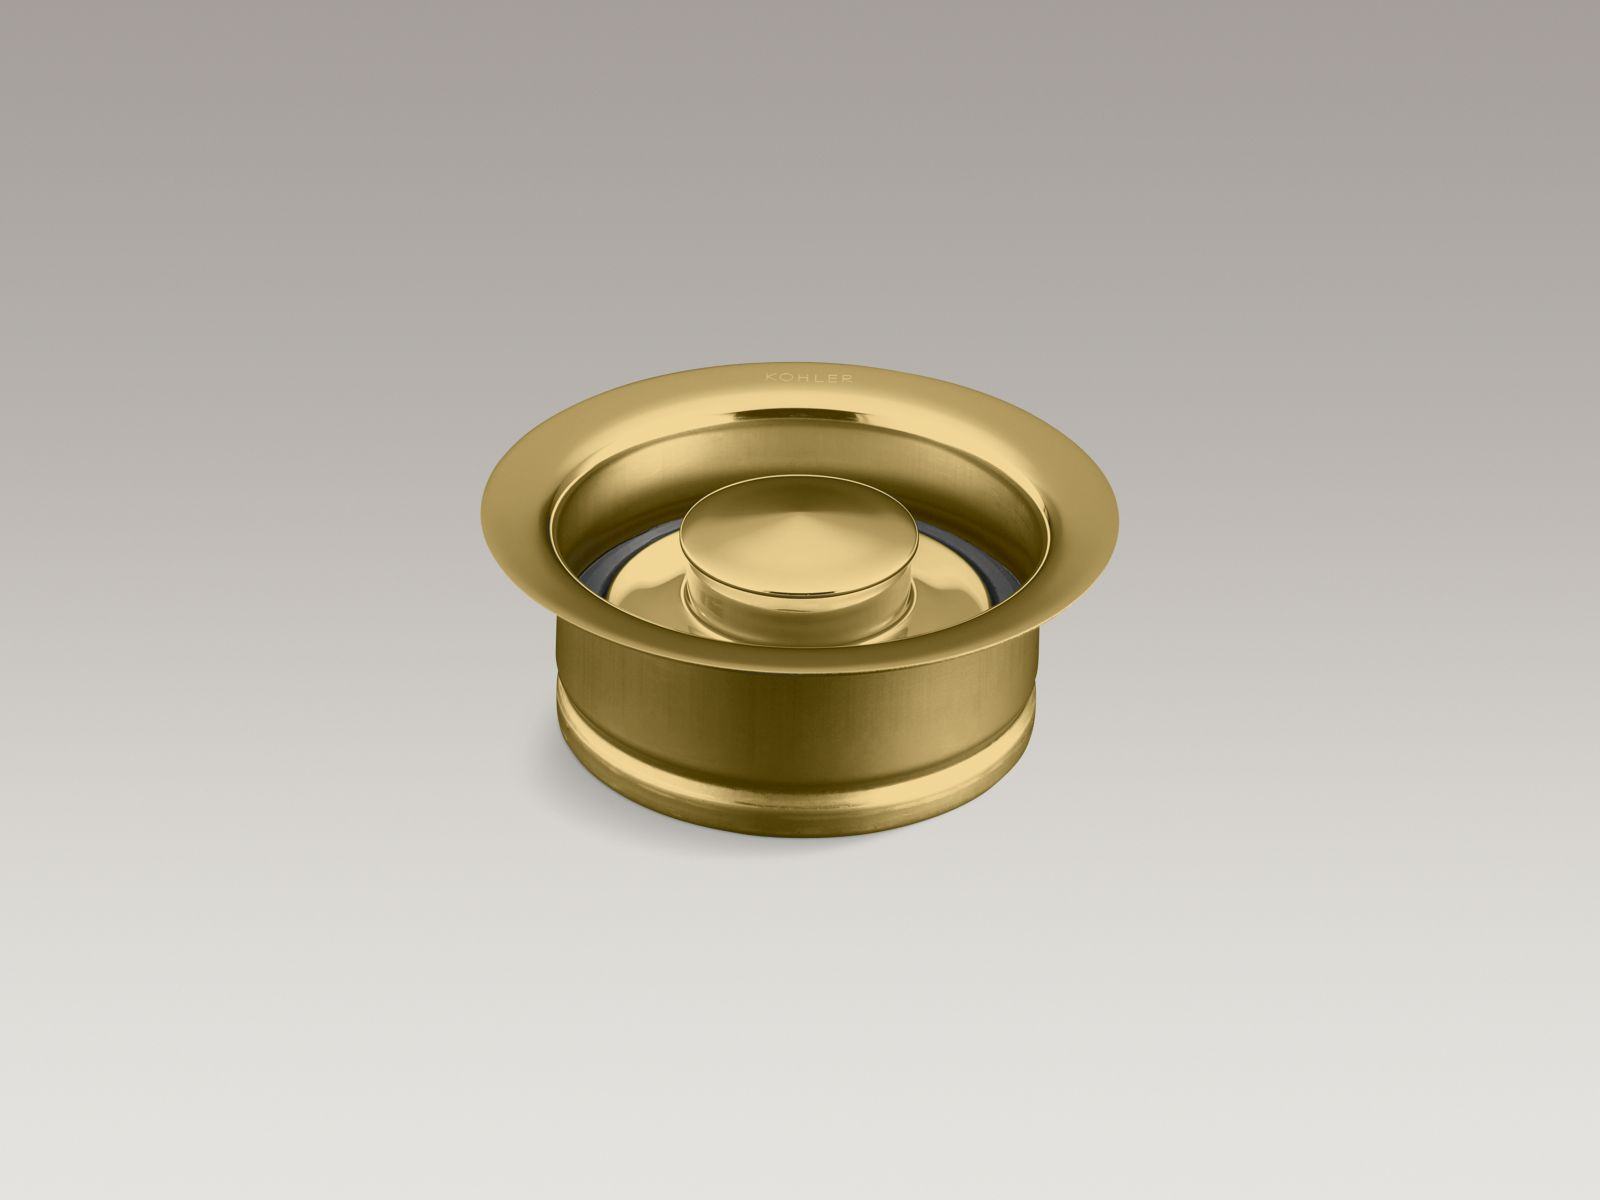 Kohler K-11352-PB Garbage Disposal Flange with Stopper Vibrant Polished Brass